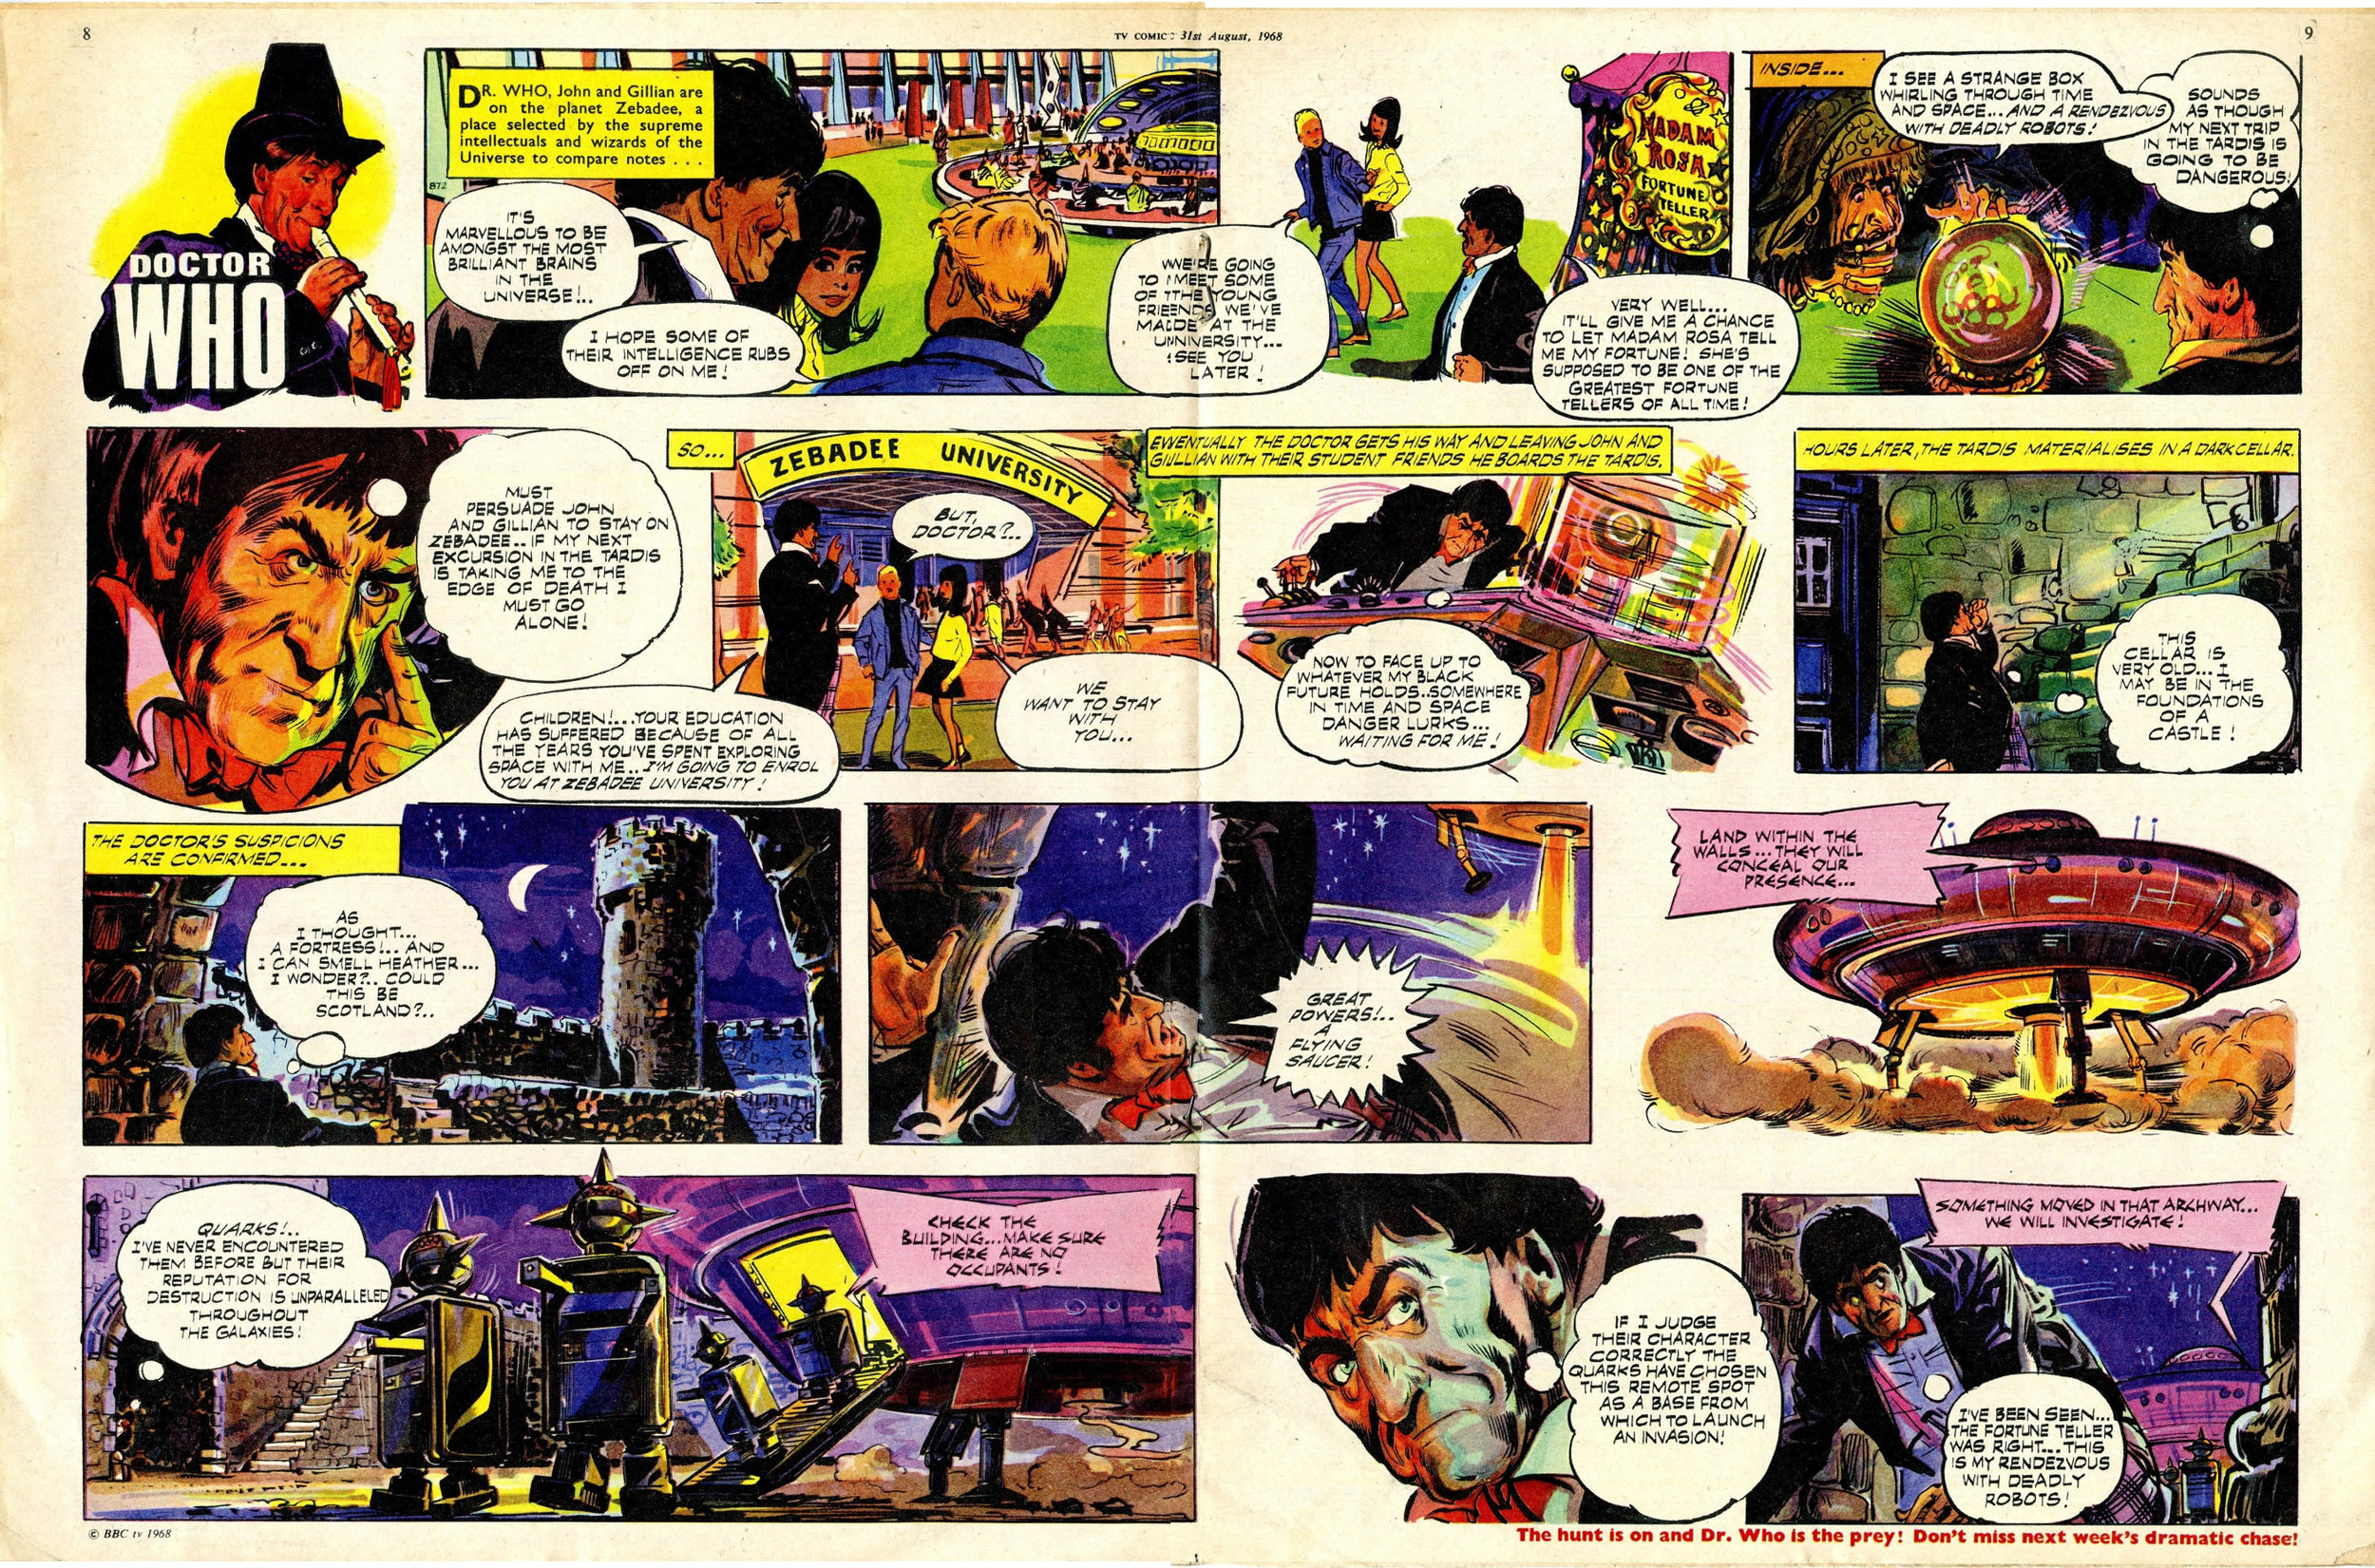 Final appearance of John and Gillian in TV Comic, number 872, 31 August 1968